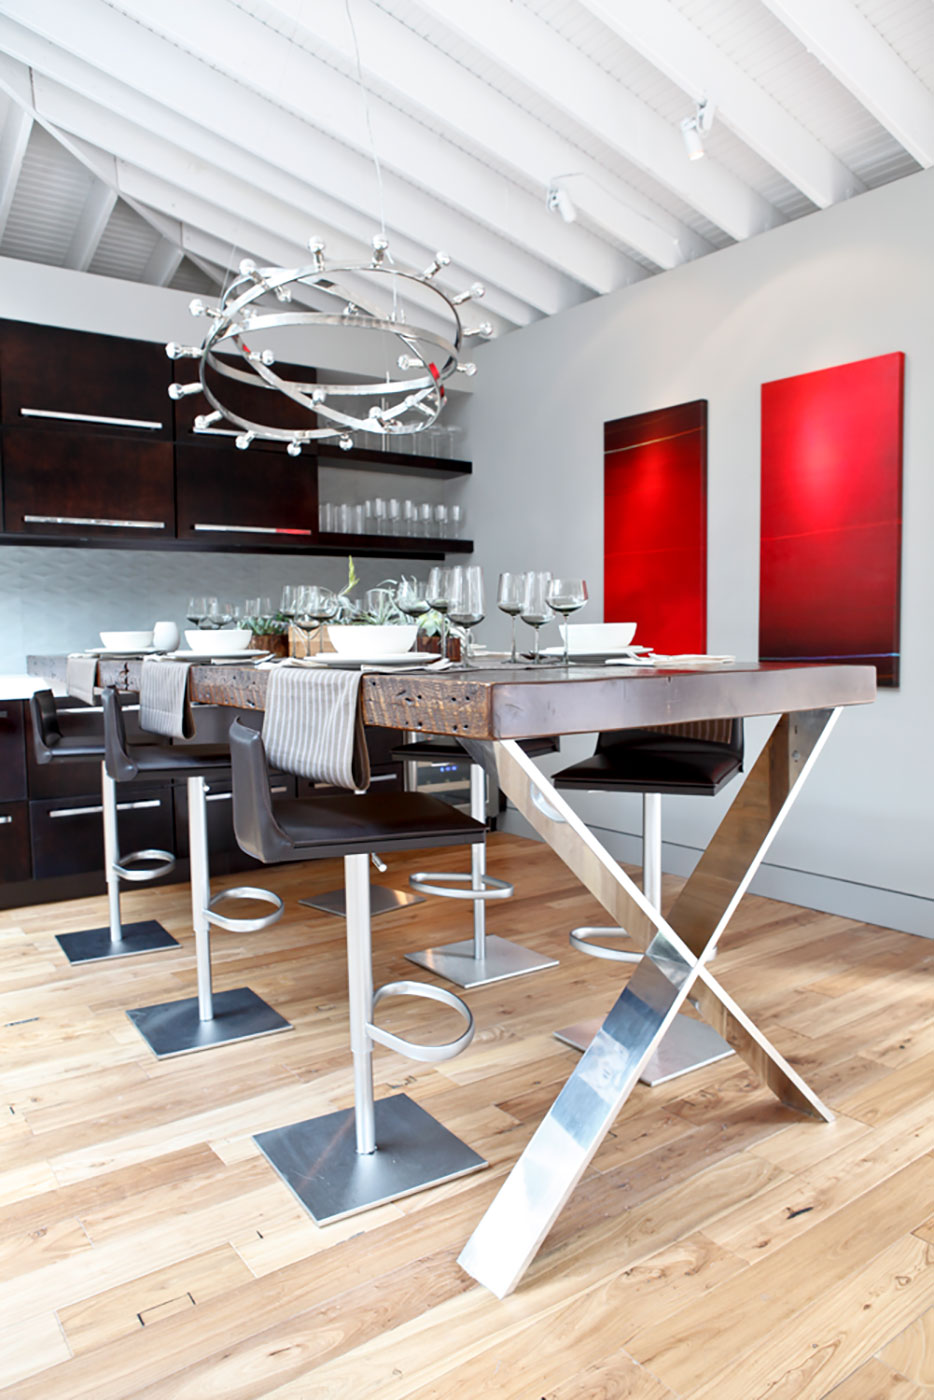 Sustainable Custom Table by Jeff Soderbergh